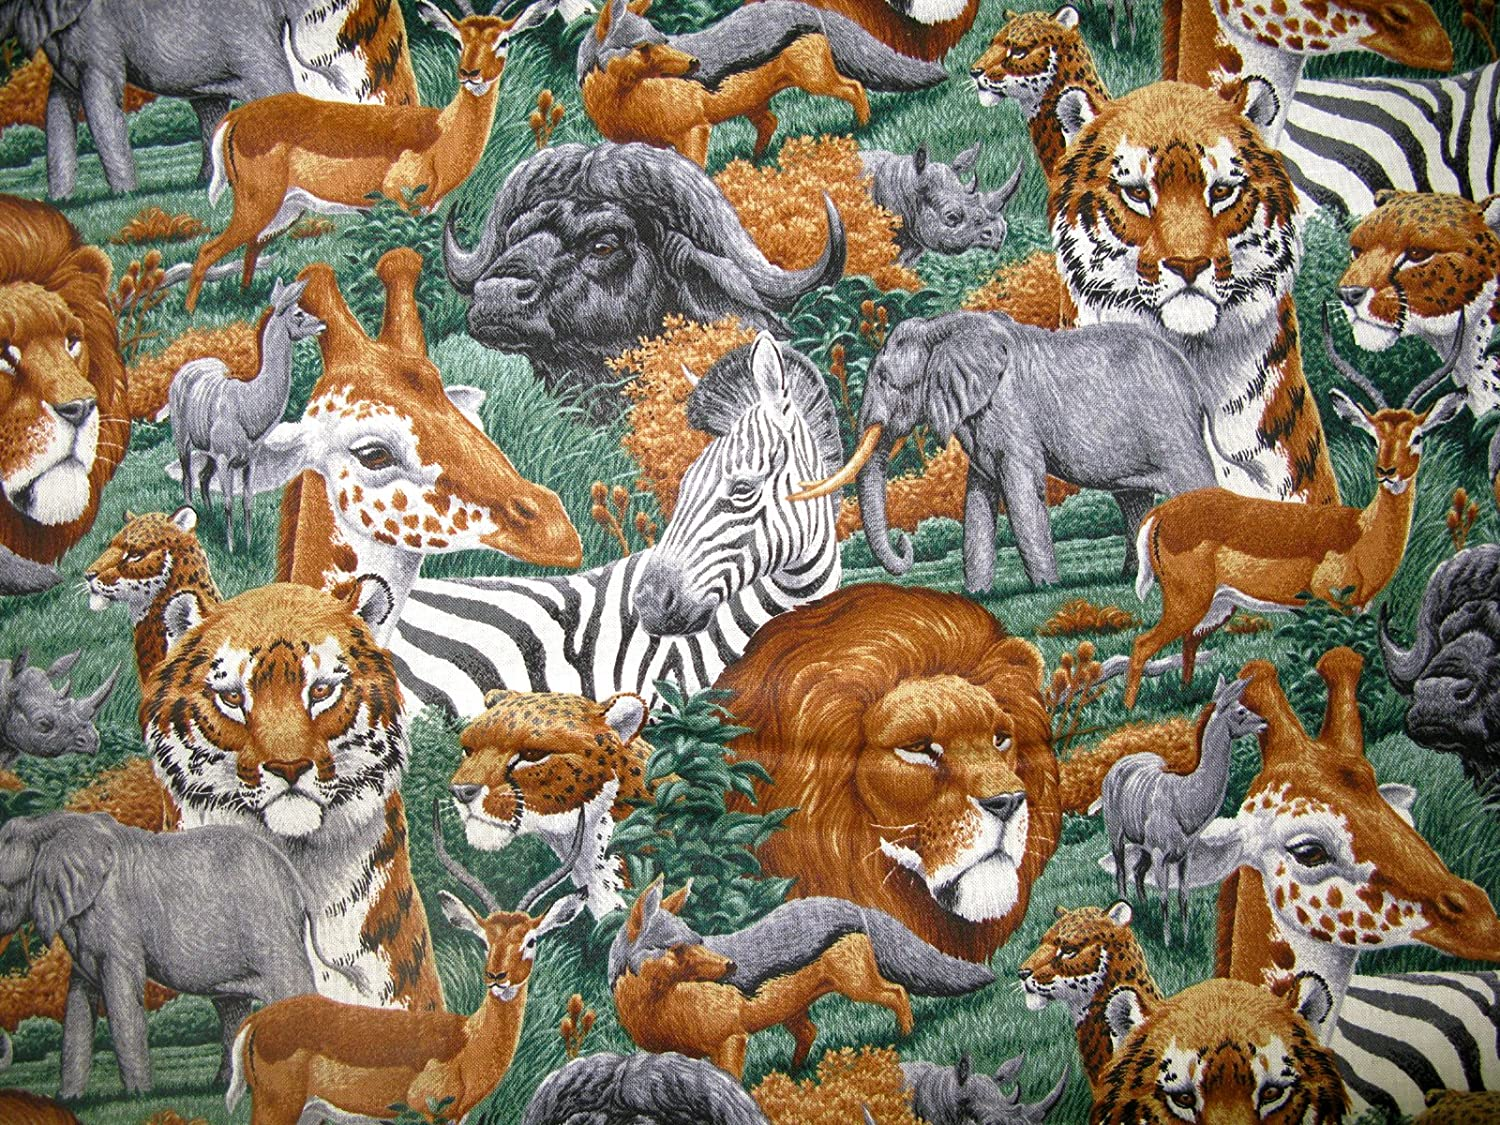 Wild Animals Vinyl Lined Waterproof Fabric 1yd by 44 in Wide Safari Print Cotton Material Lined on Underside for Sewing Projects Like Tablecloths, Tablecovers, Aprons - Top Rated Quality